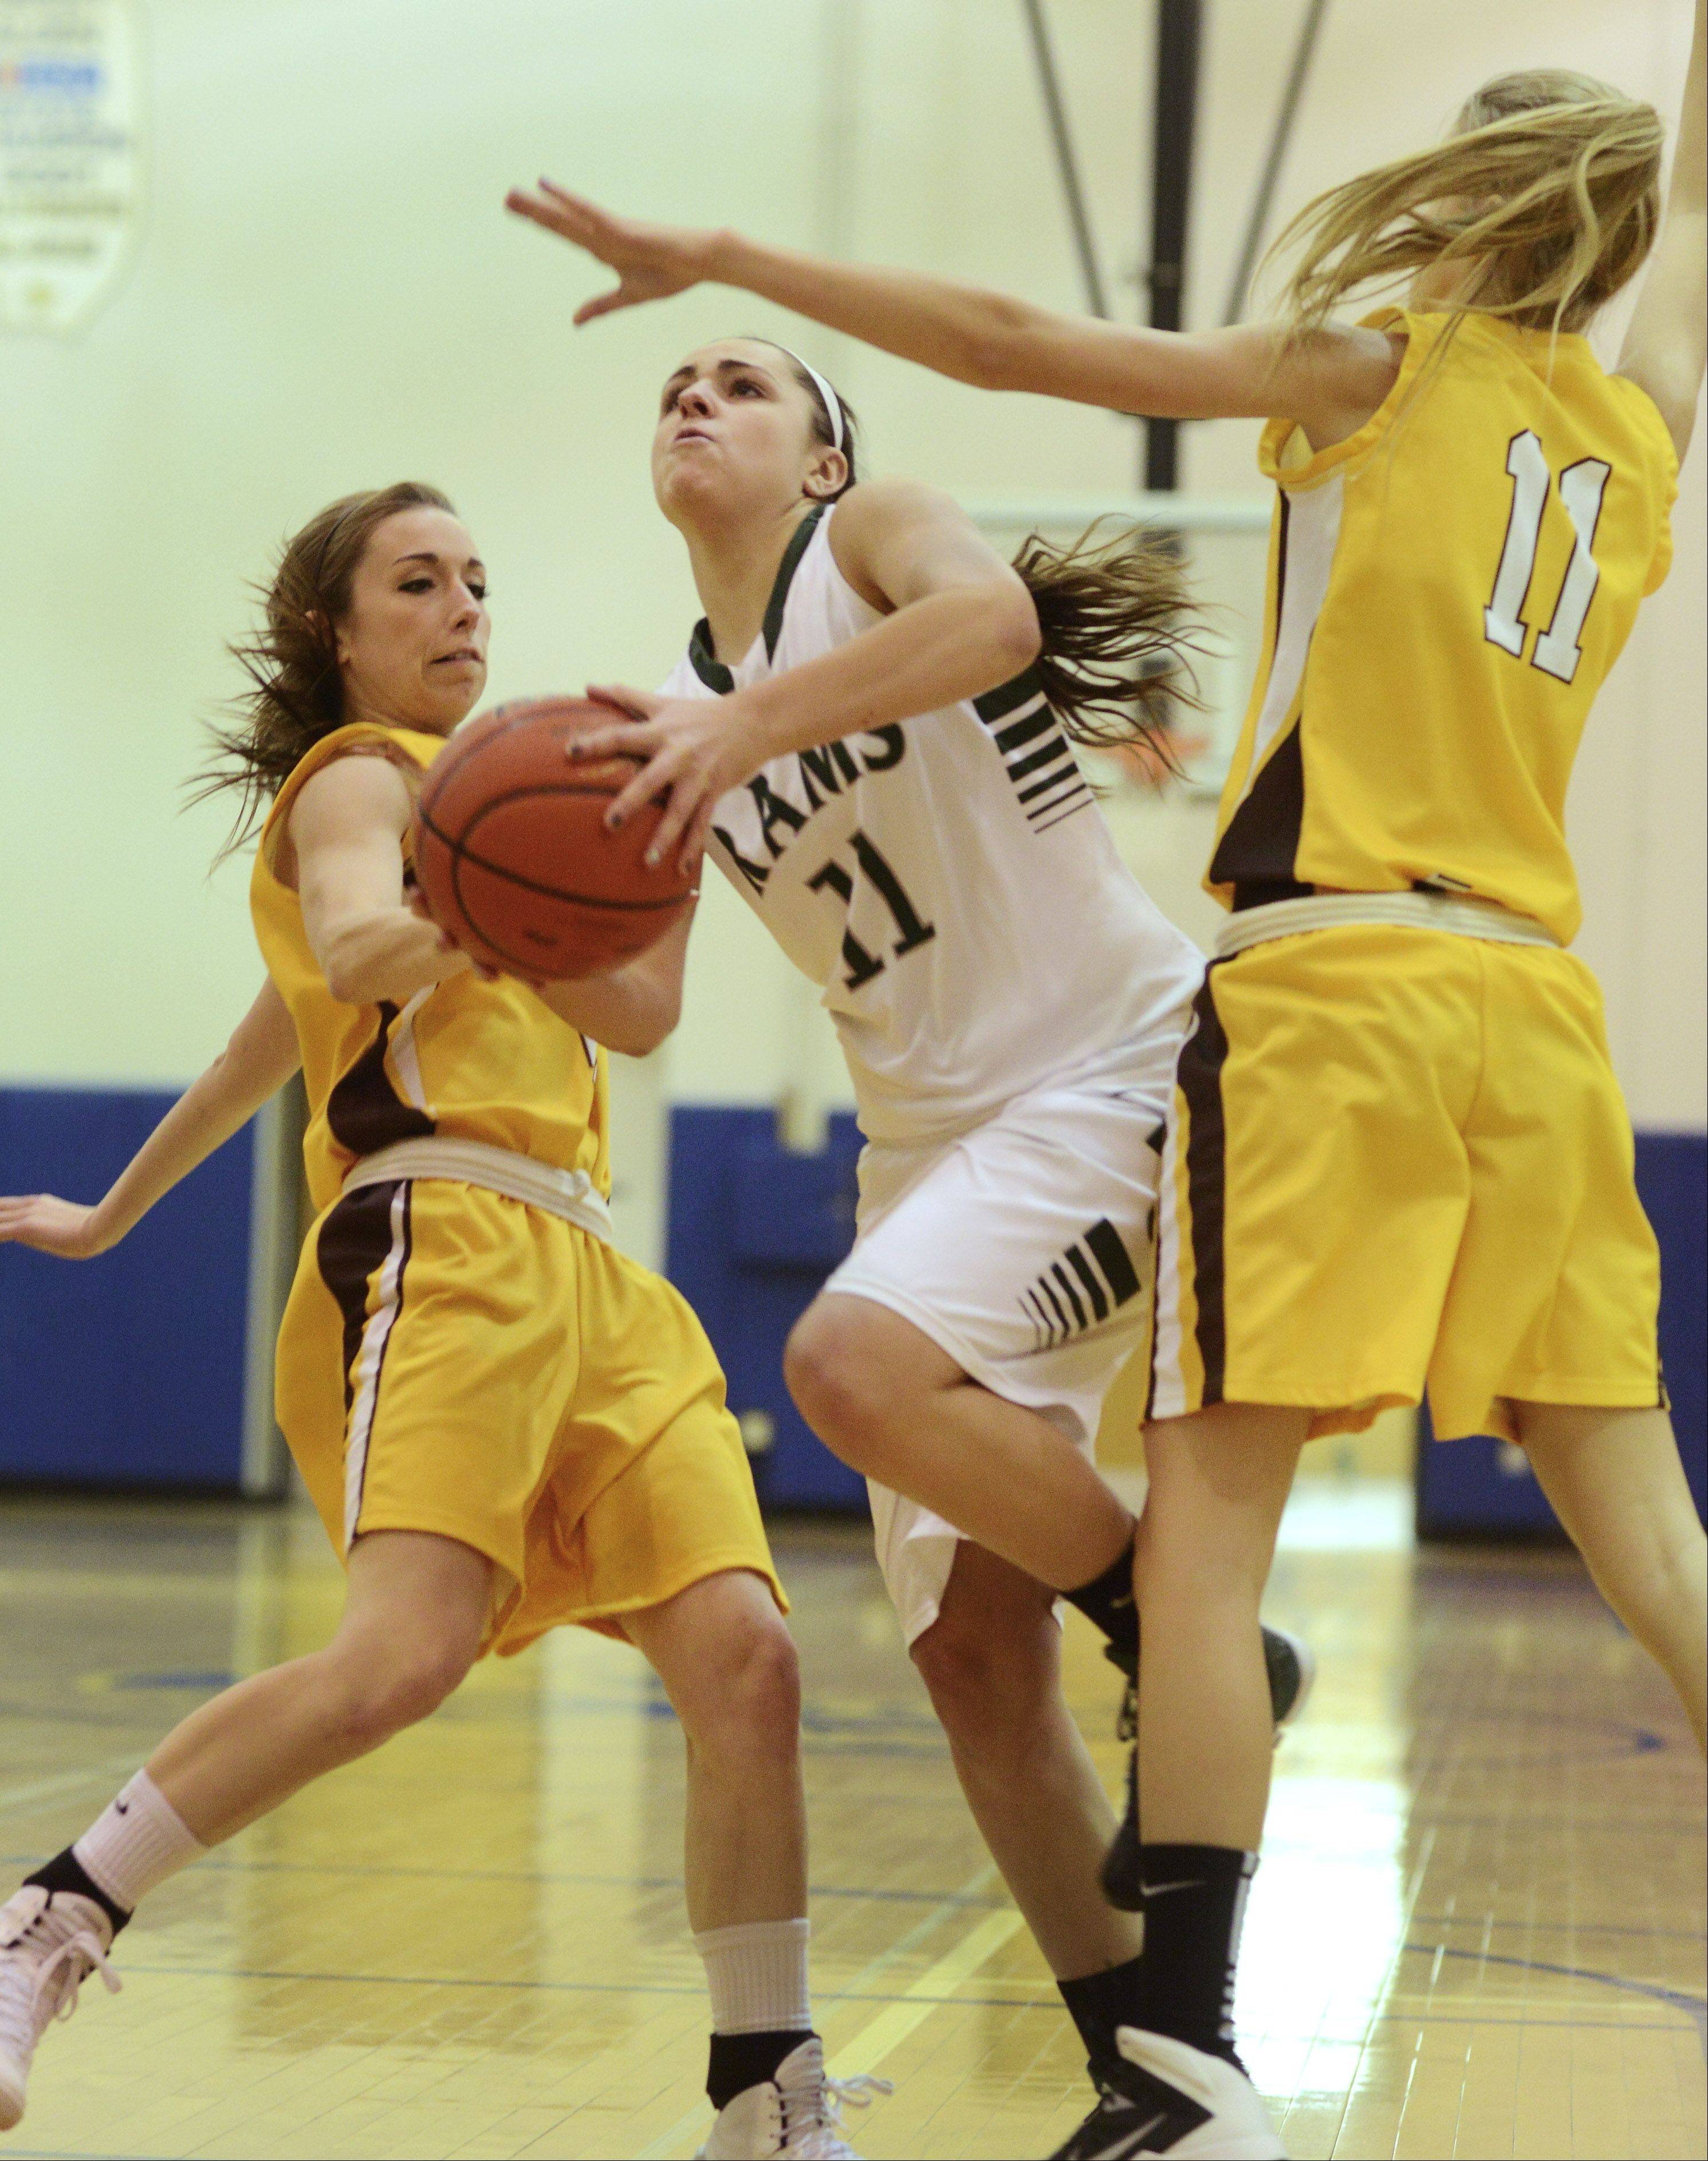 Grayslake Central's Carson Sparkman looks steps between Carmel's Nicole Bitter, left, and Leah Lach during Saturday's game at Warren.